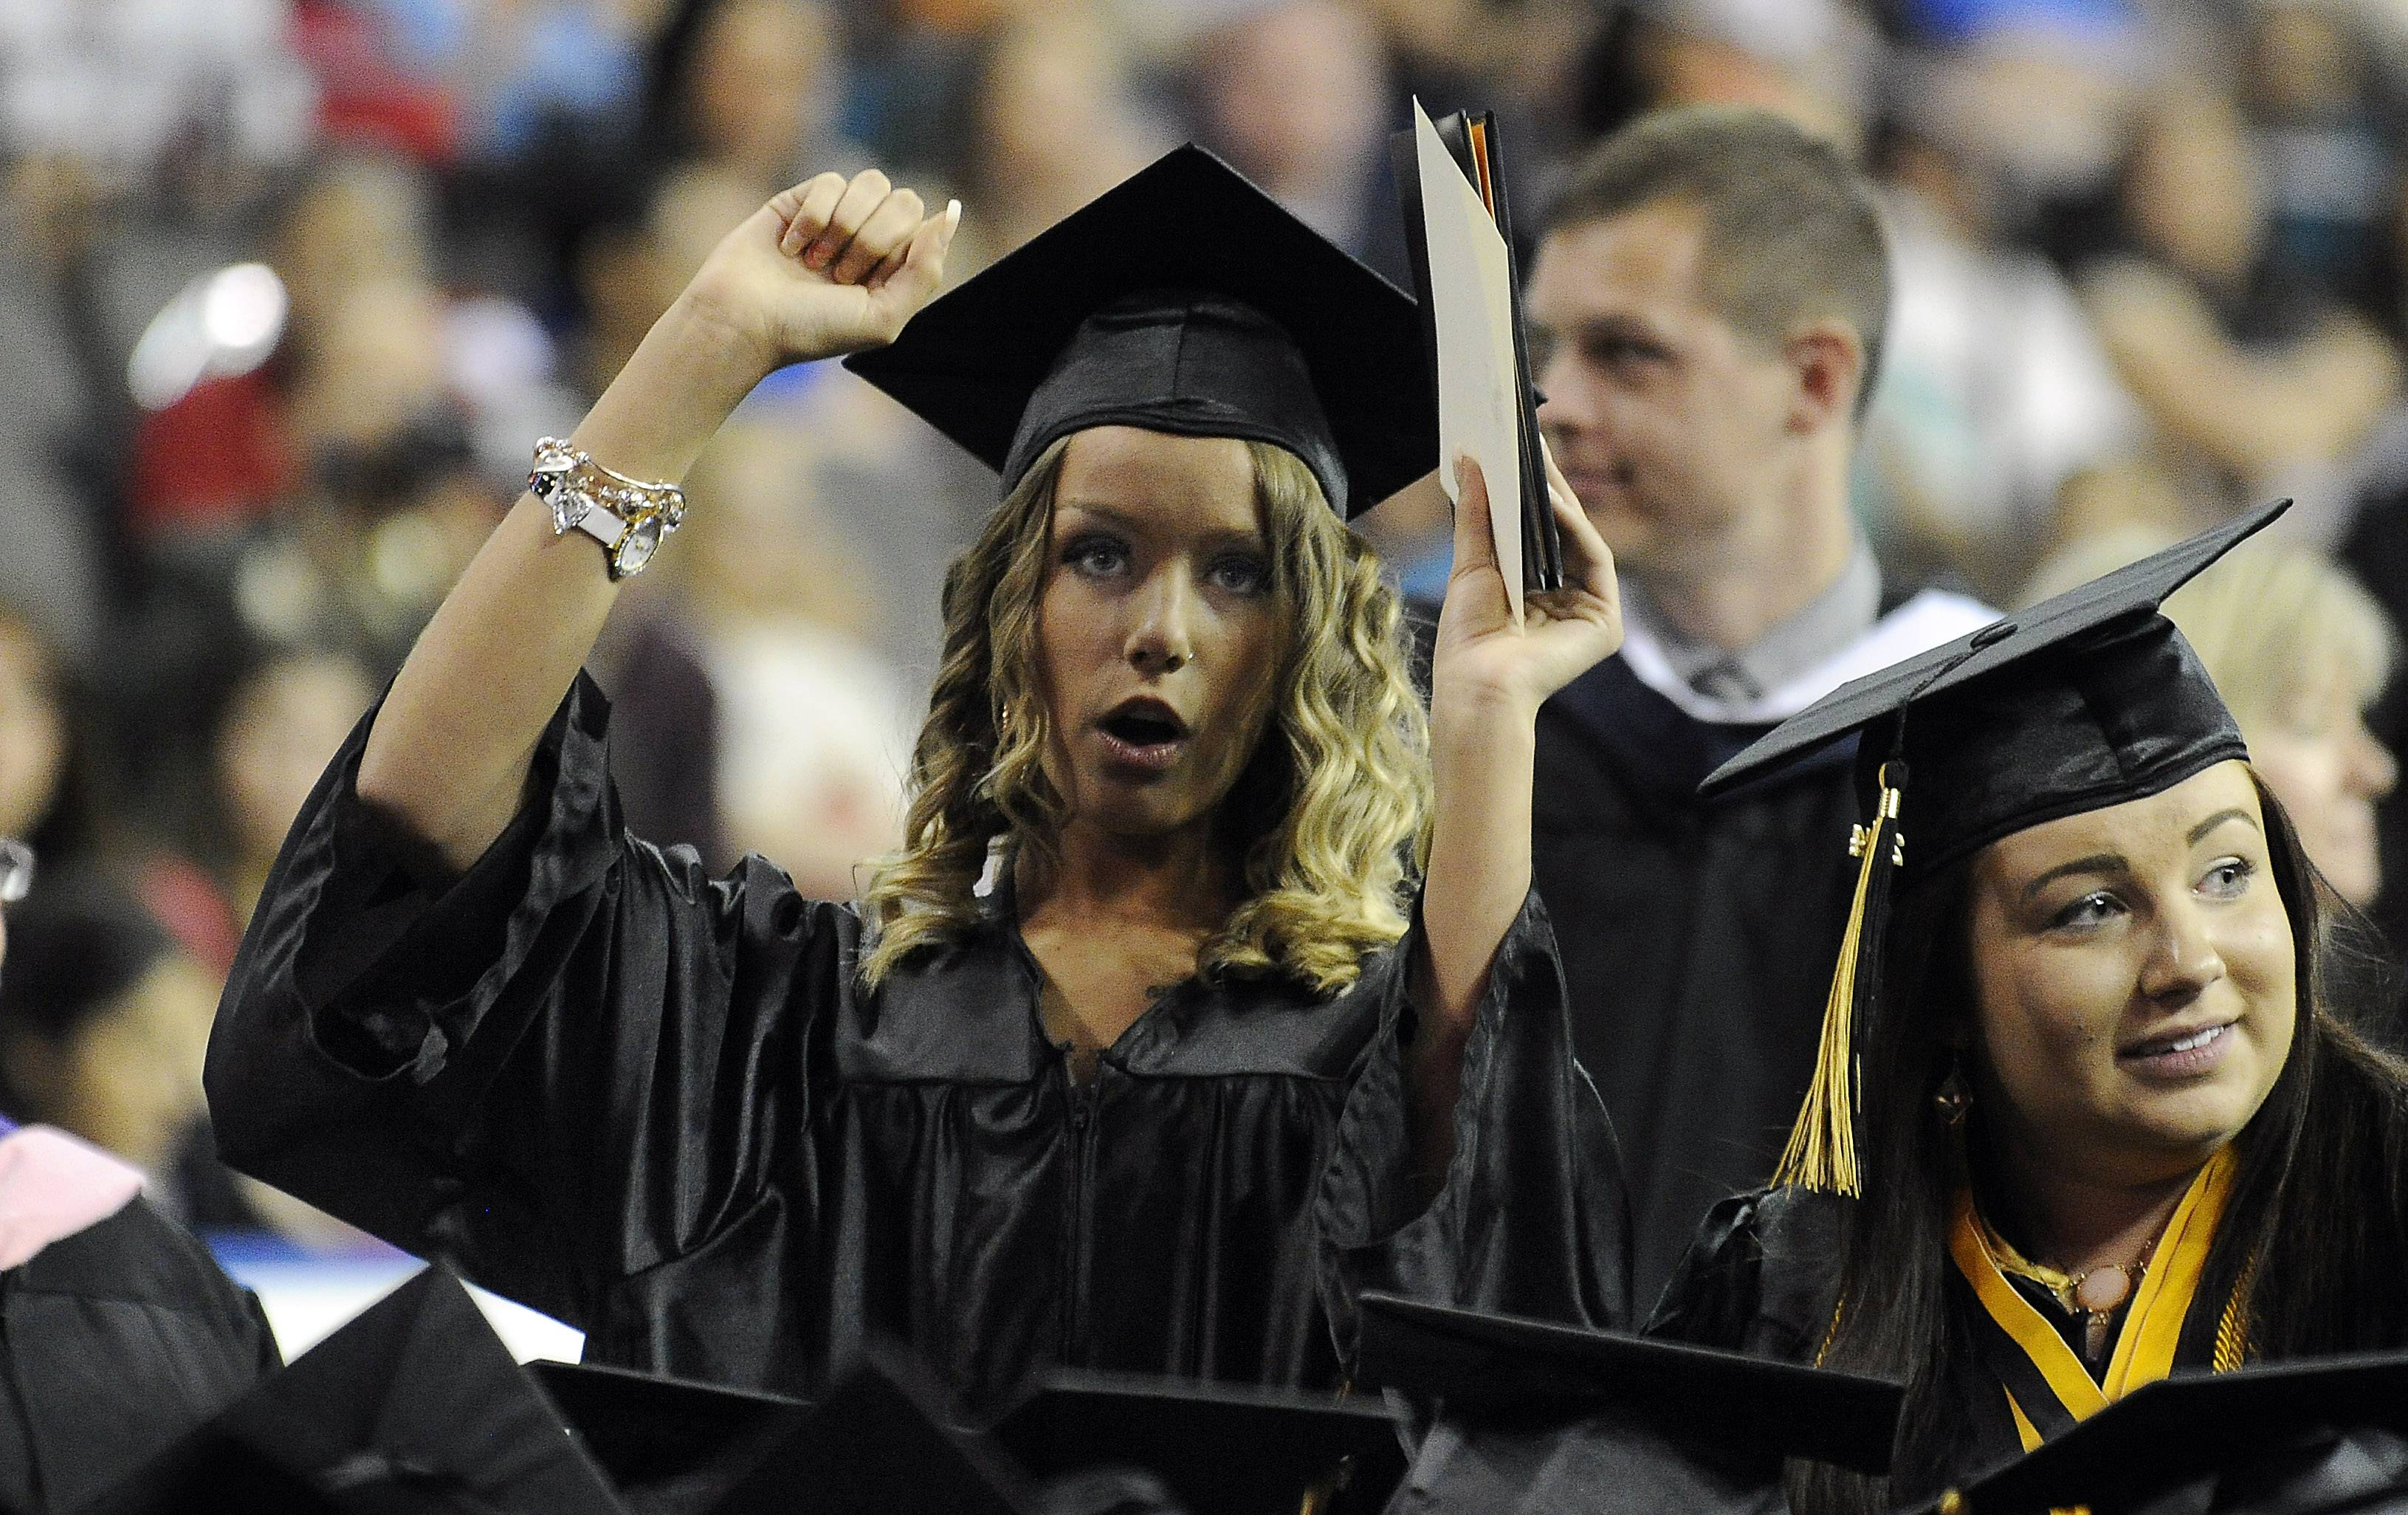 Kelli Morris, 18, of Streamwood starts to feel the excitement of being a graduate as the 35th commencement exercises comes to a close at  the Sears Centre in Hoffman Estates on Saturday.